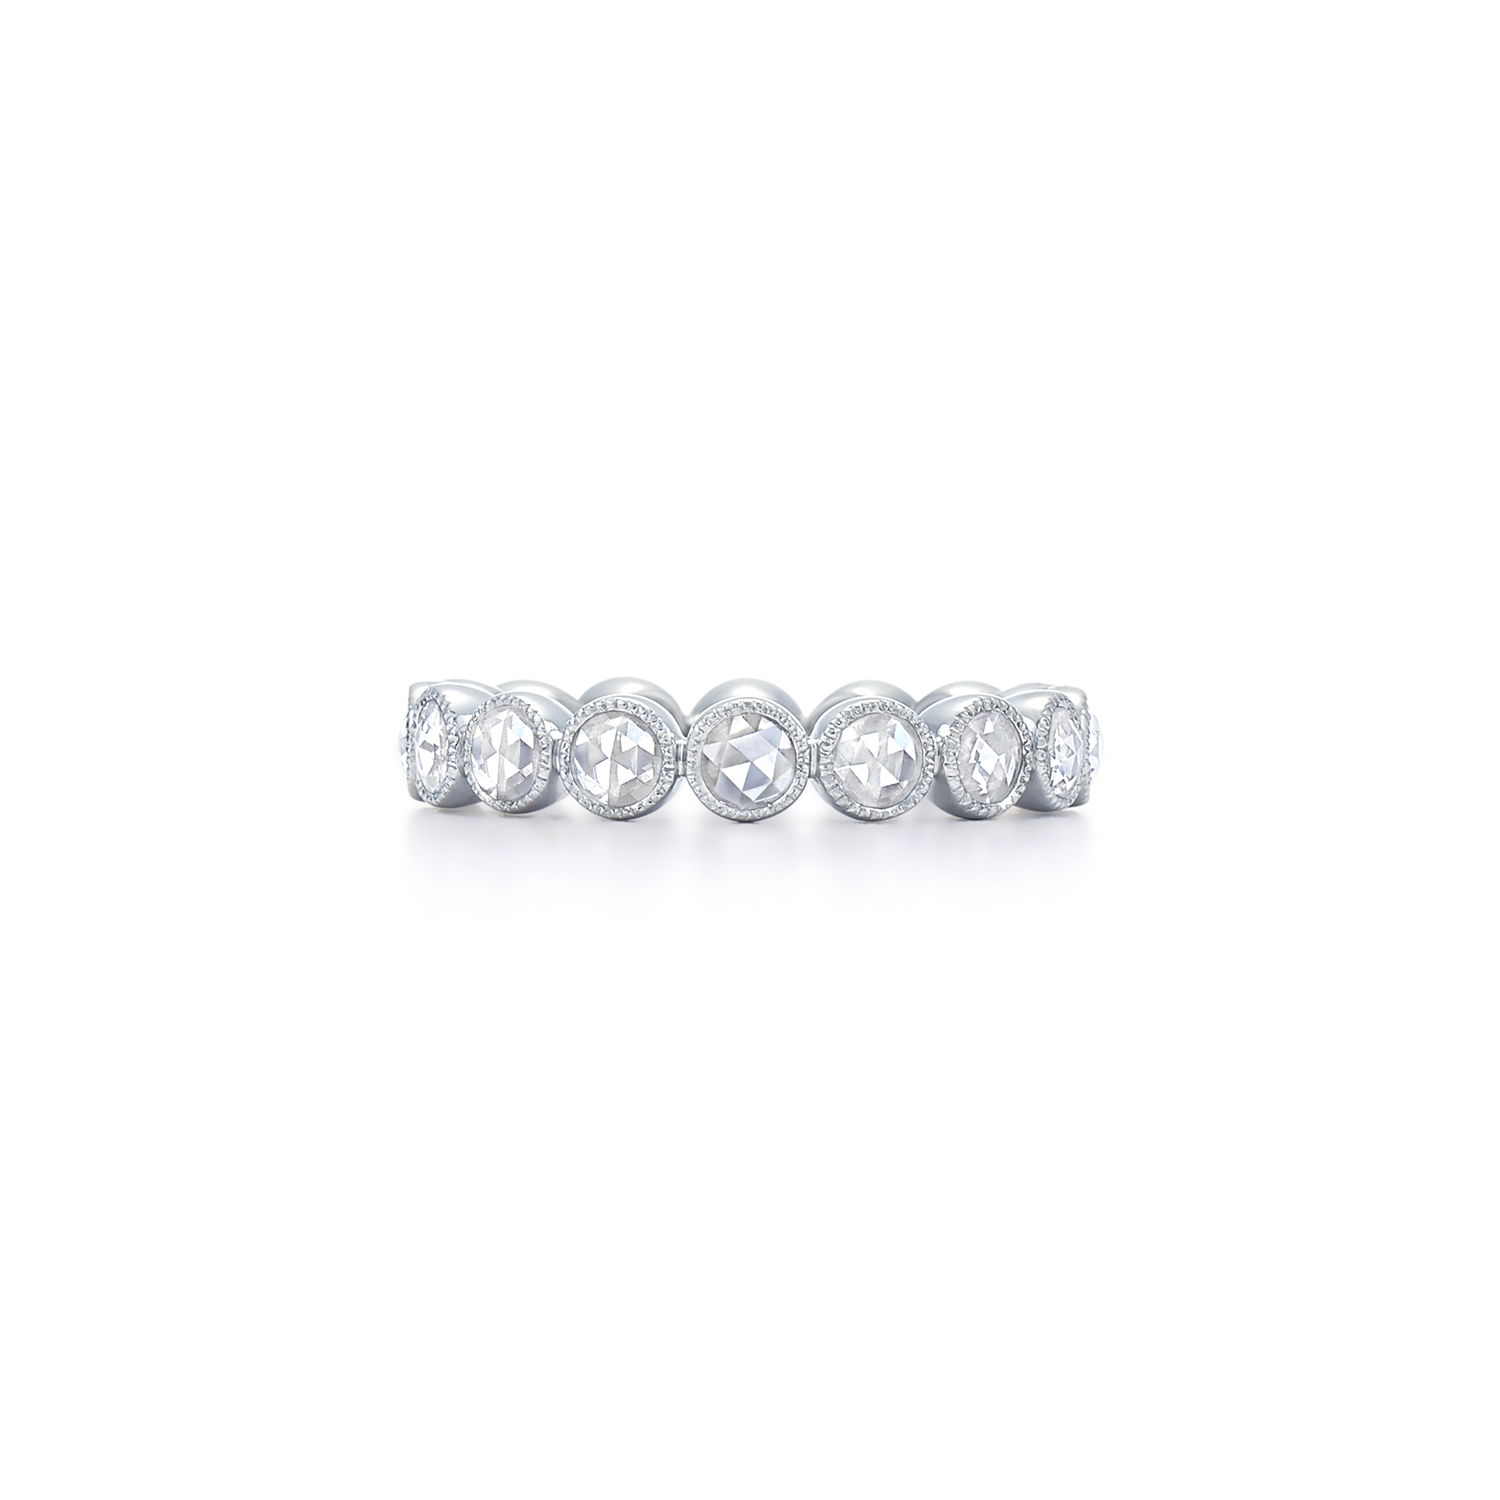 bands single home diamonds art product eternity diamond platinum in band wedding deco antique cut